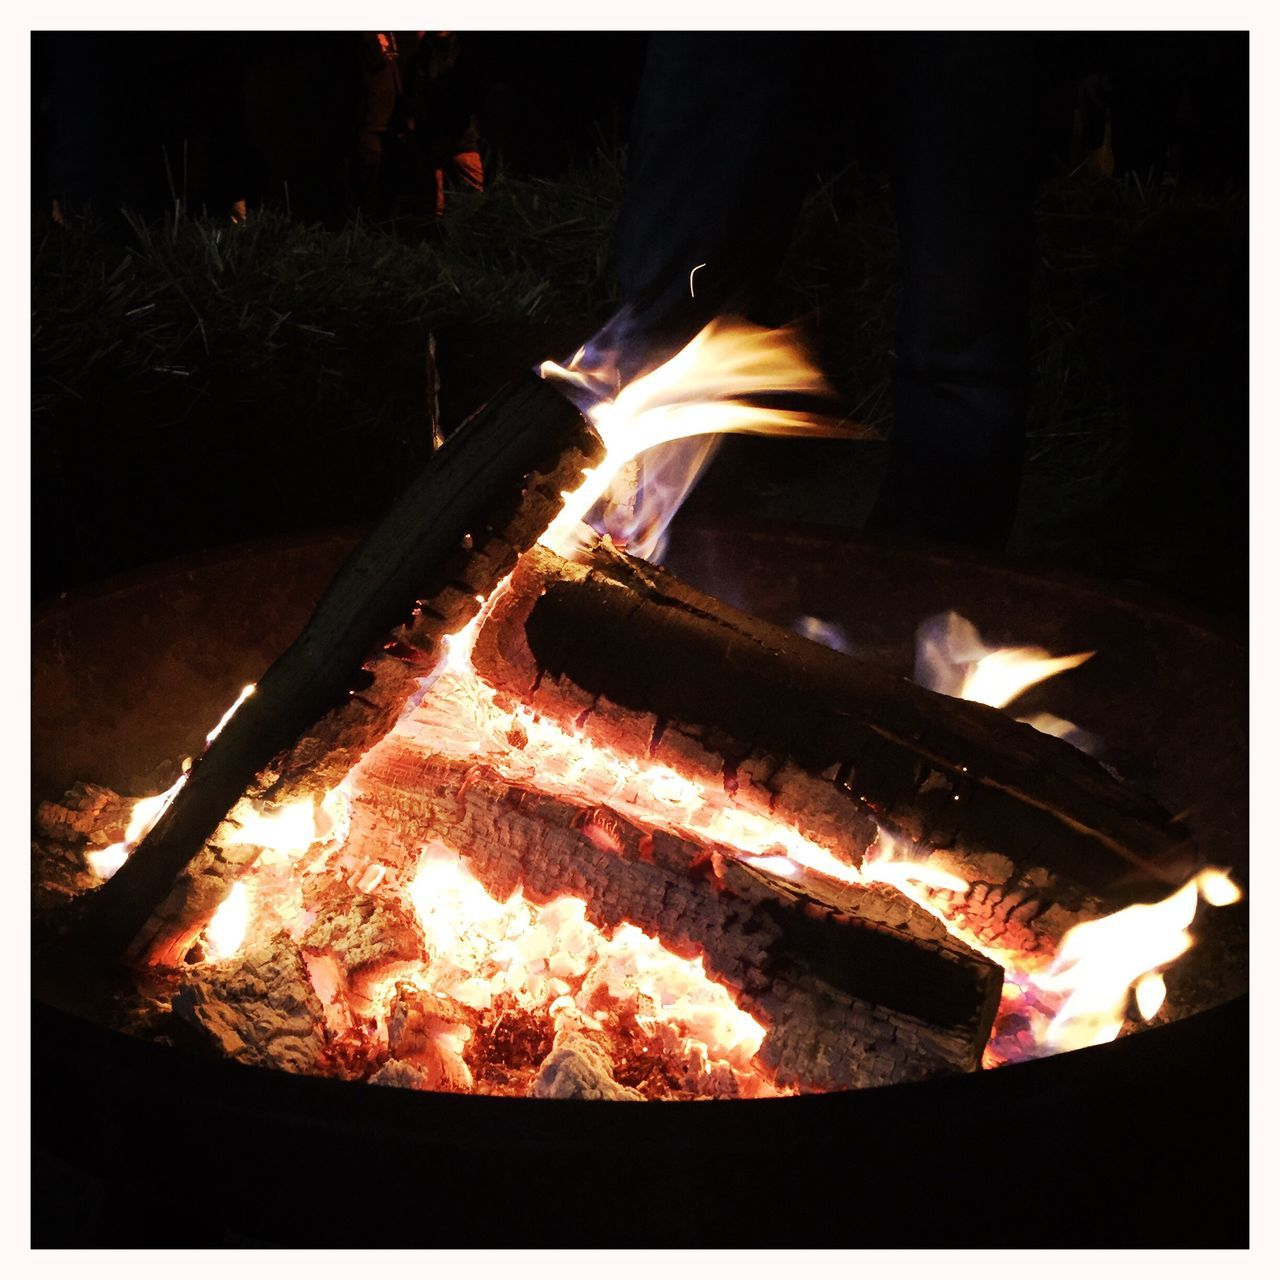 fire - natural phenomenon, flame, burning, heat - temperature, glowing, night, fire, bonfire, fire pit, long exposure, motion, preparation, campfire, barbecue, outdoors, food and drink, food, meat, no people, close-up, ash, illuminated